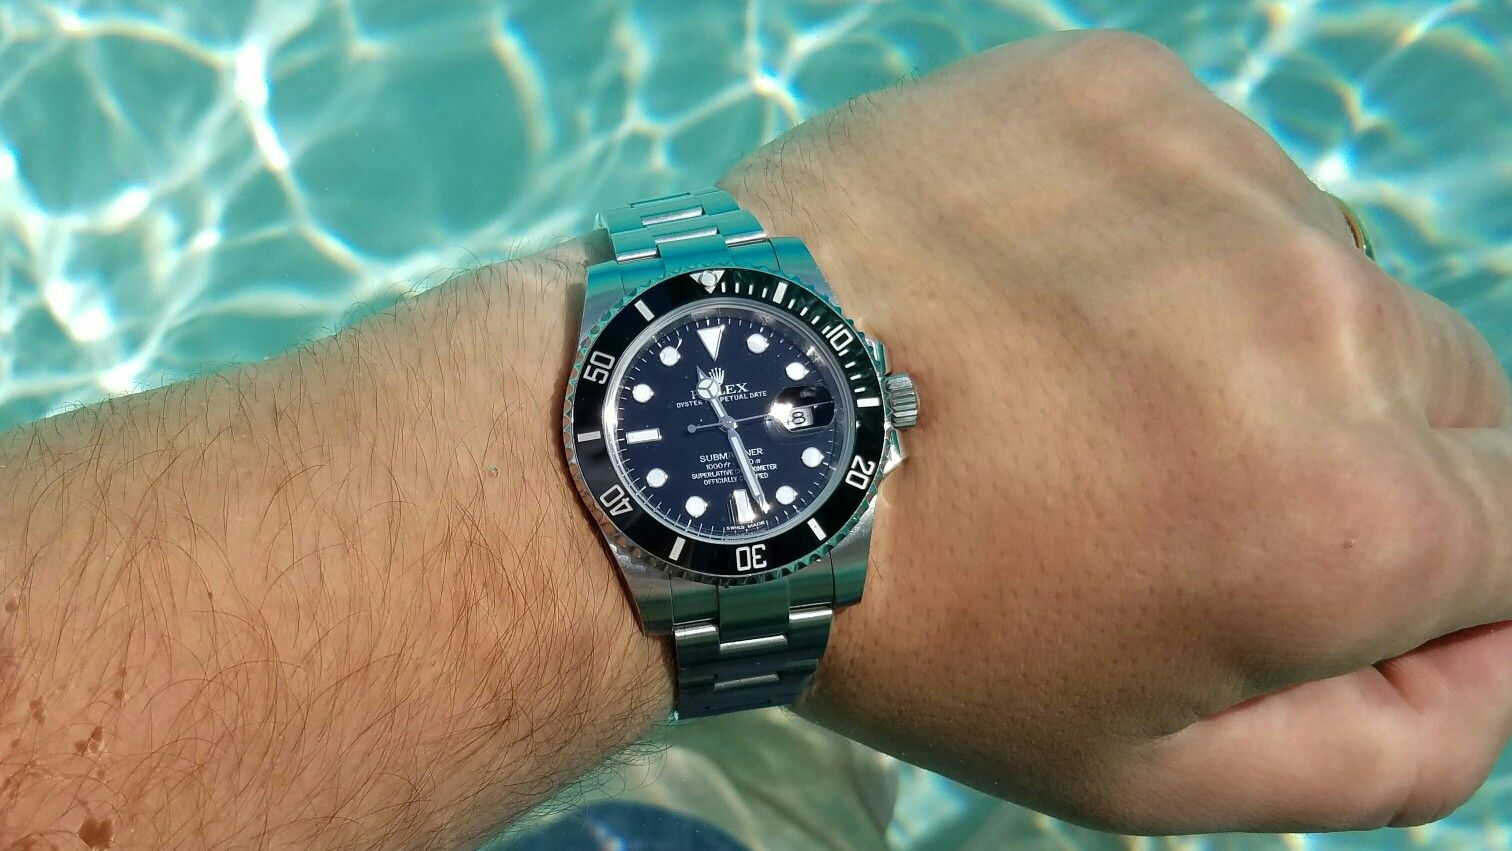 Rolex submariner ceramic wrist shot, vacation, summer